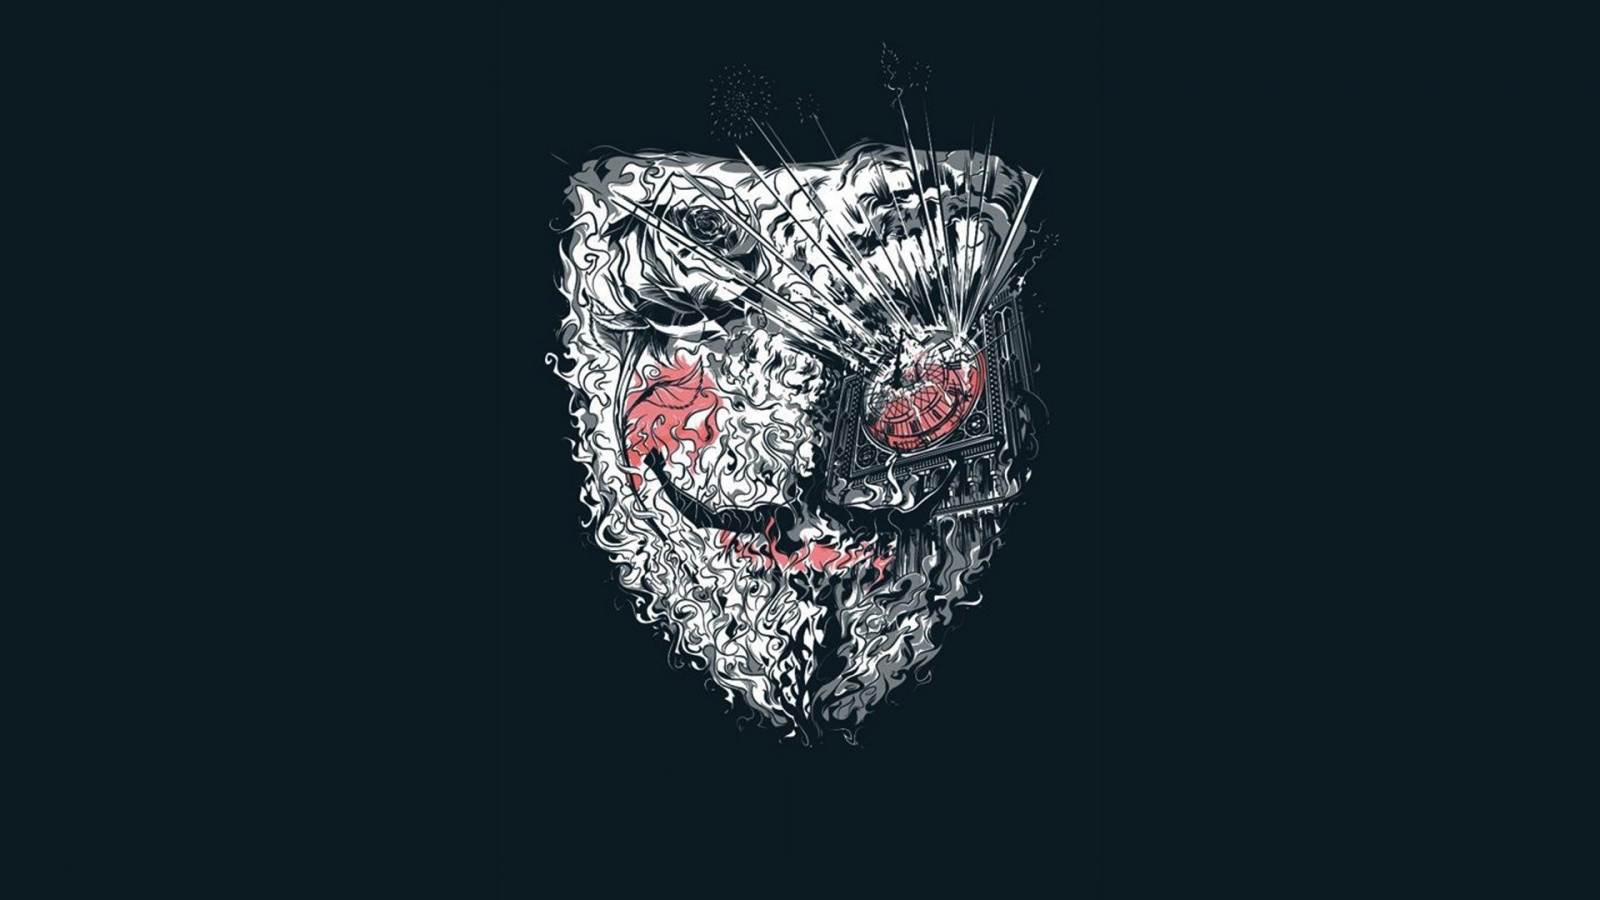 Anonymous v for vendetta artwork wallpapers 1600x900 - Wallpaper picture ...